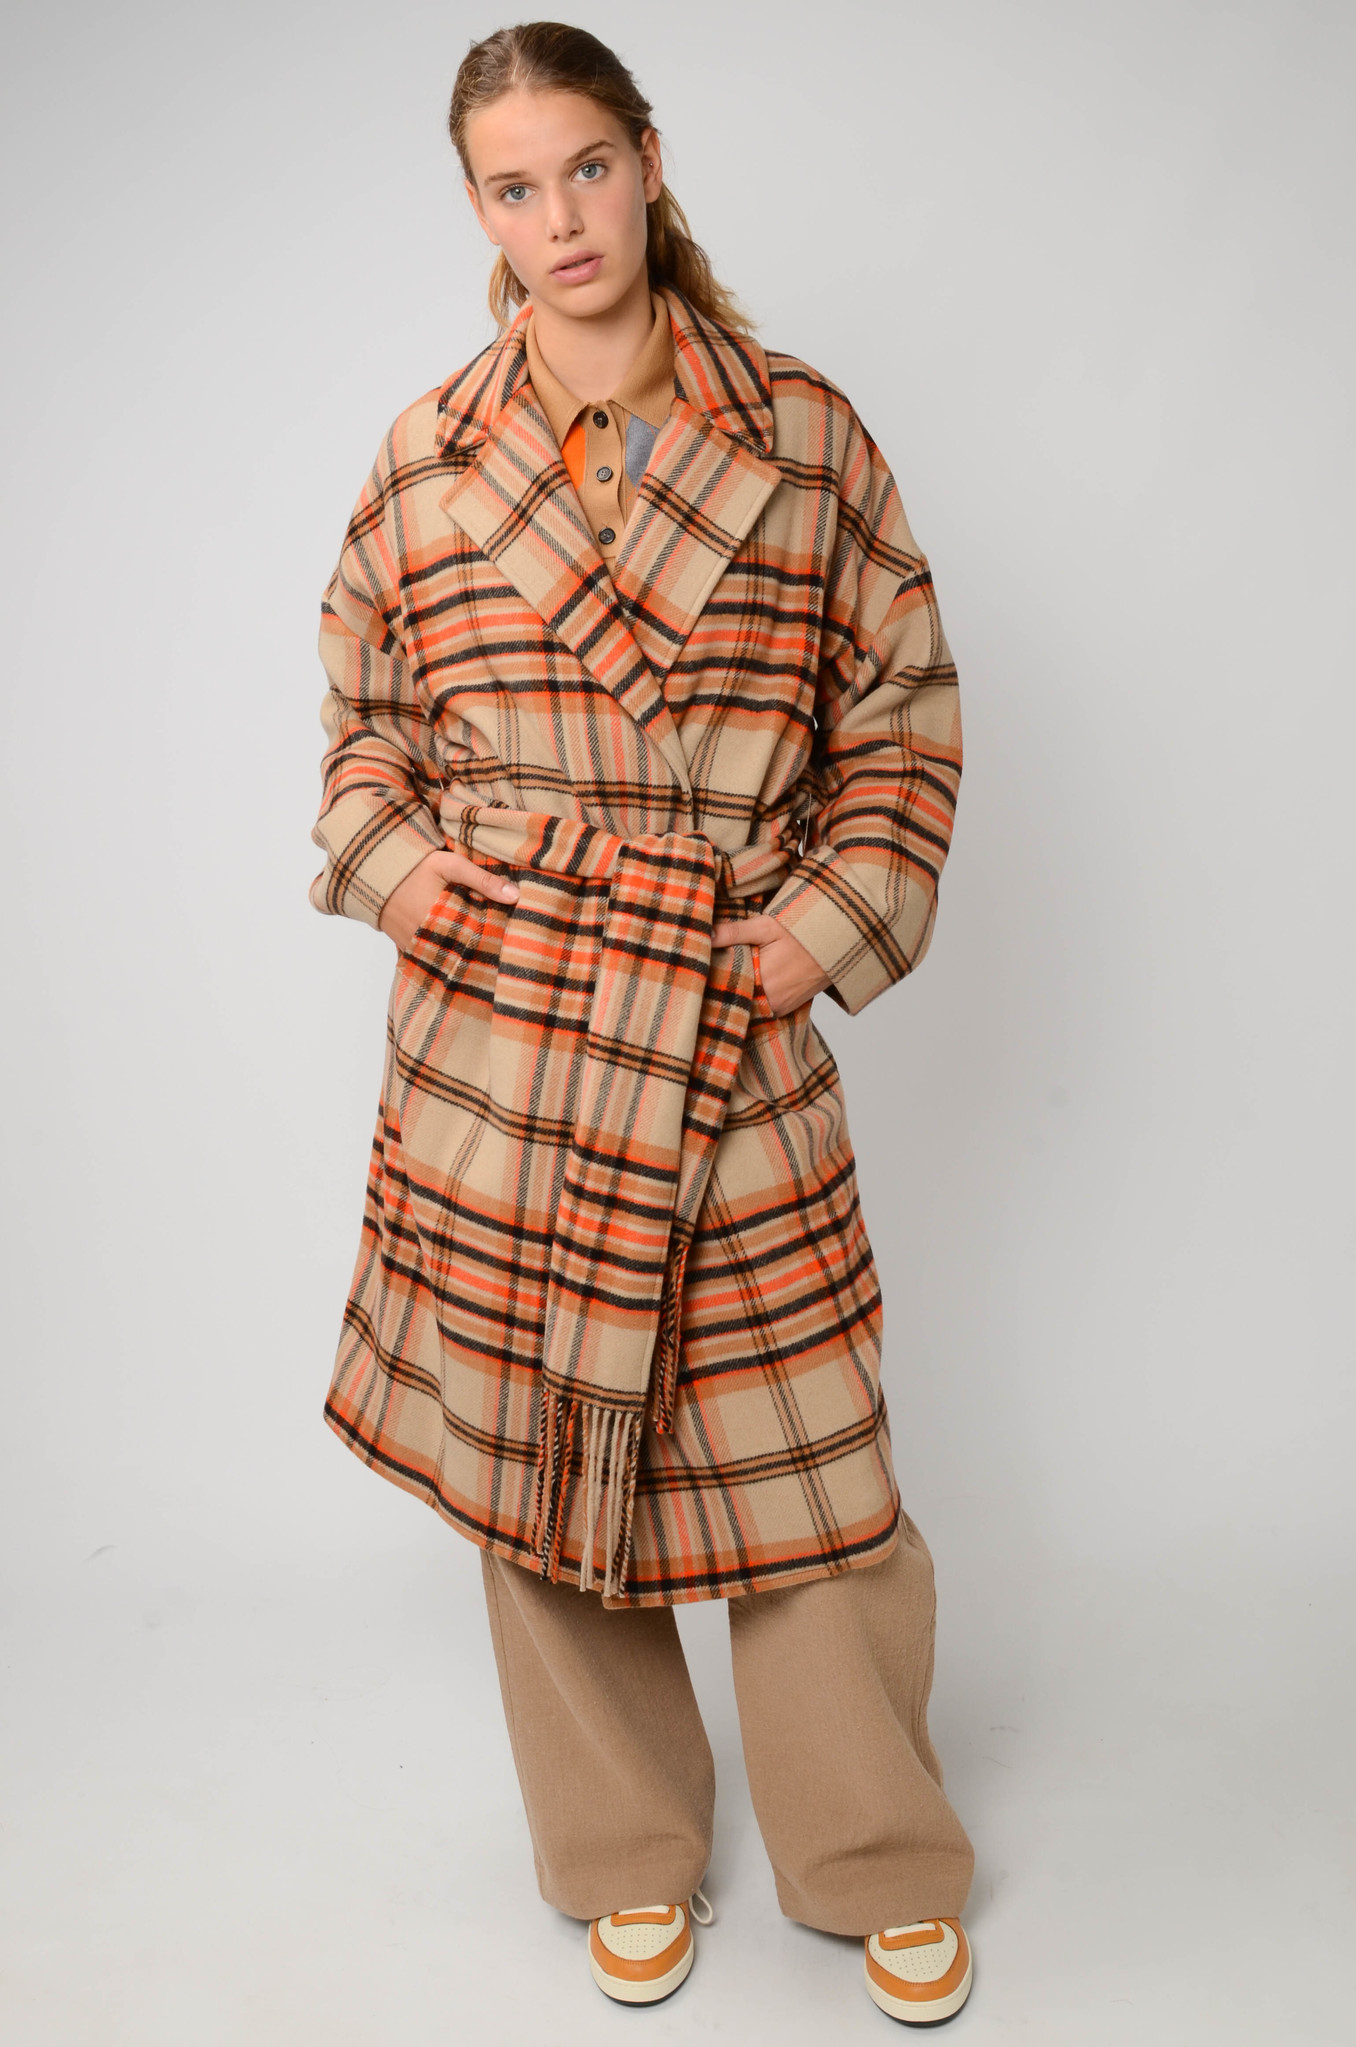 CHECKERED COAT IN ORANGE AND CAMEL-7